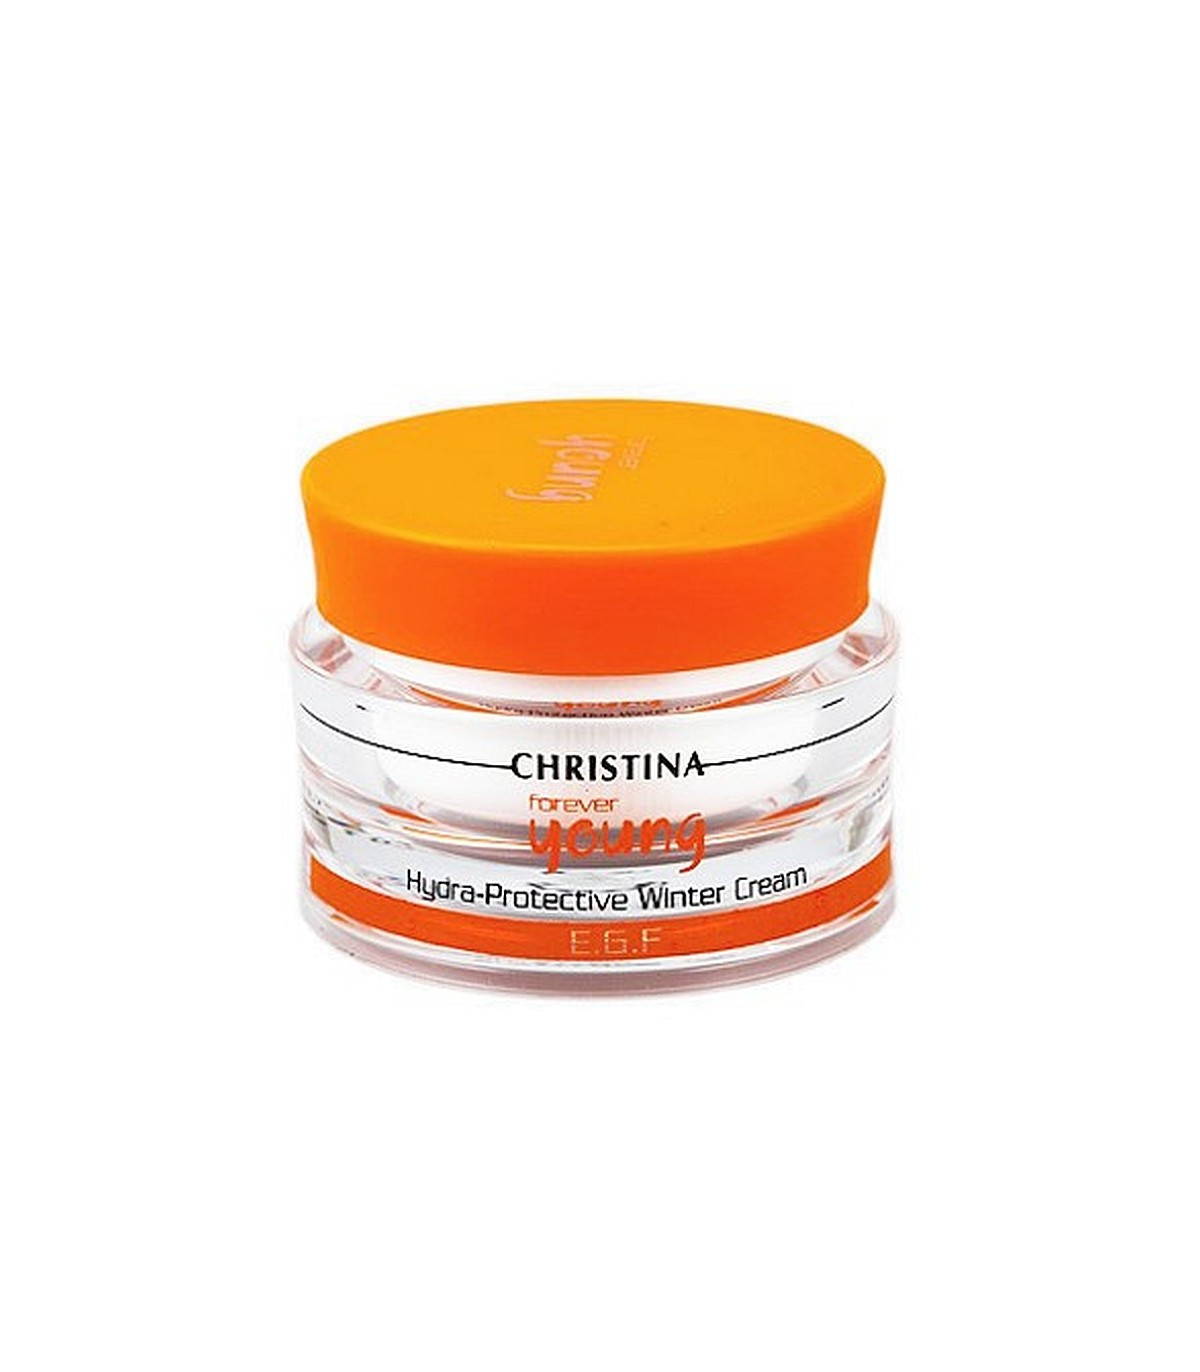 Hydra Protective Winter Cream - SPF-20 - Forever Young - Christina - 50 ml